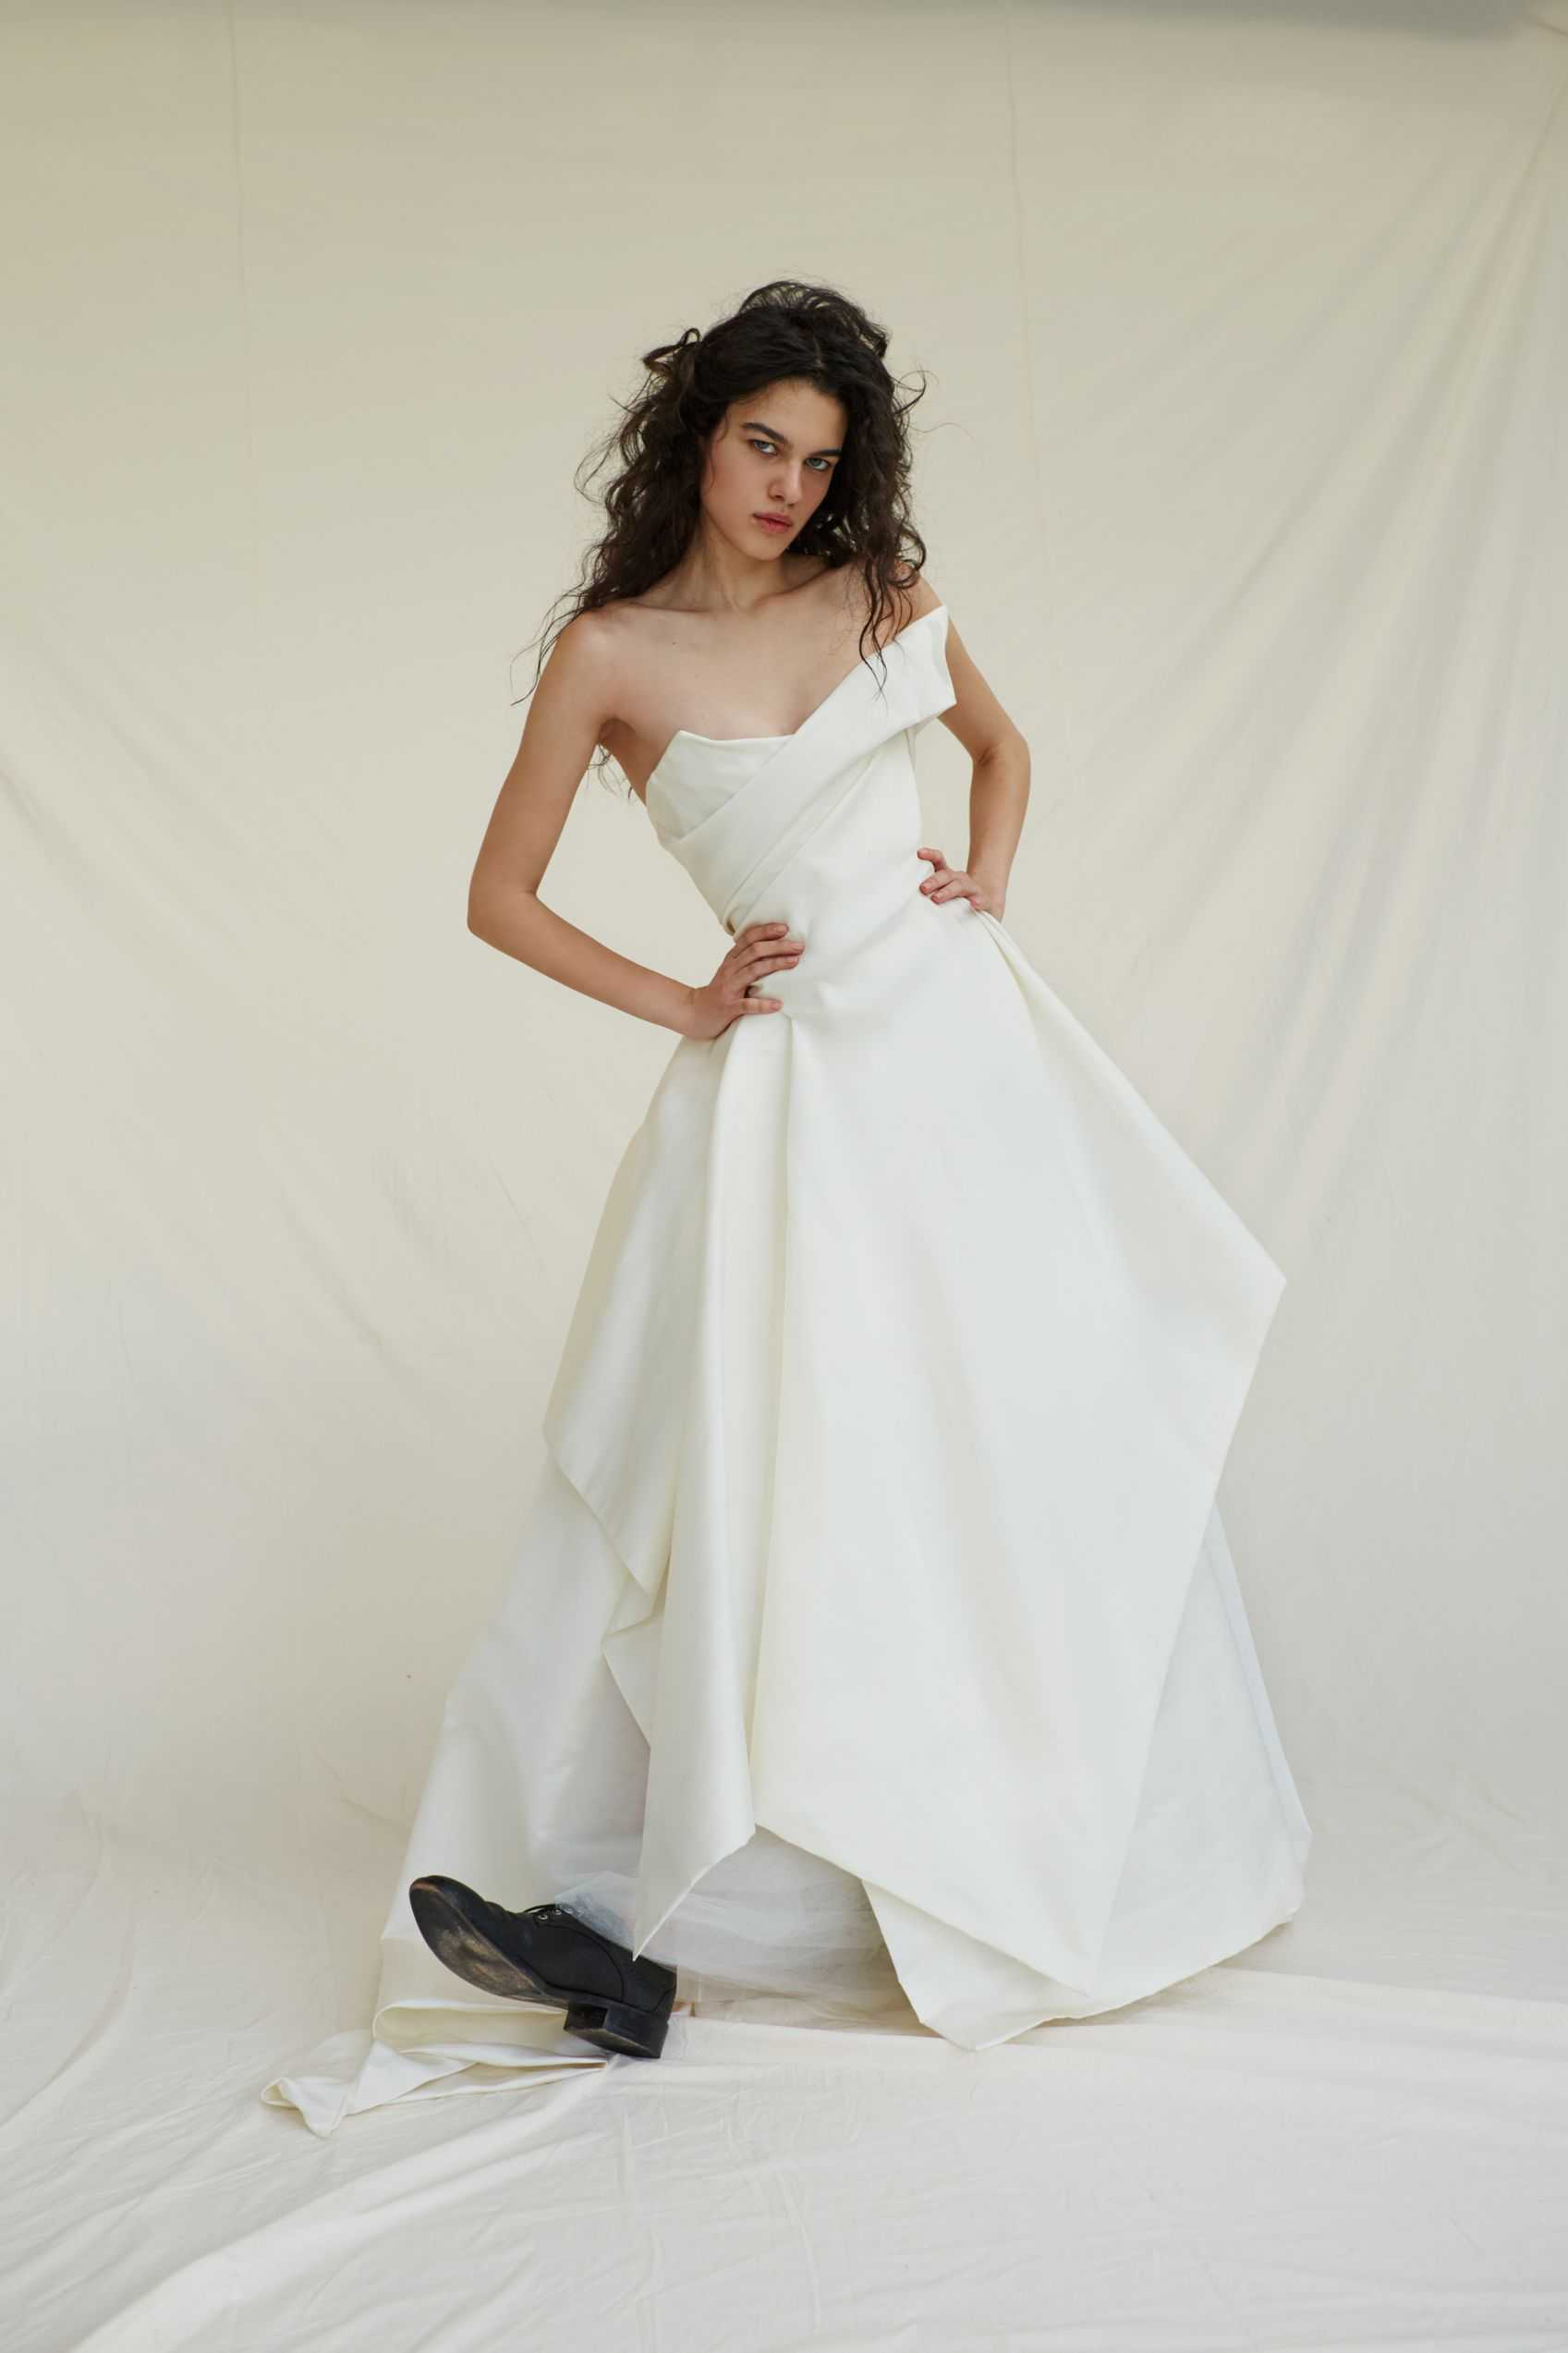 Vienna Couture Viviennewestwood Or By Calling 43 0 1532 0904